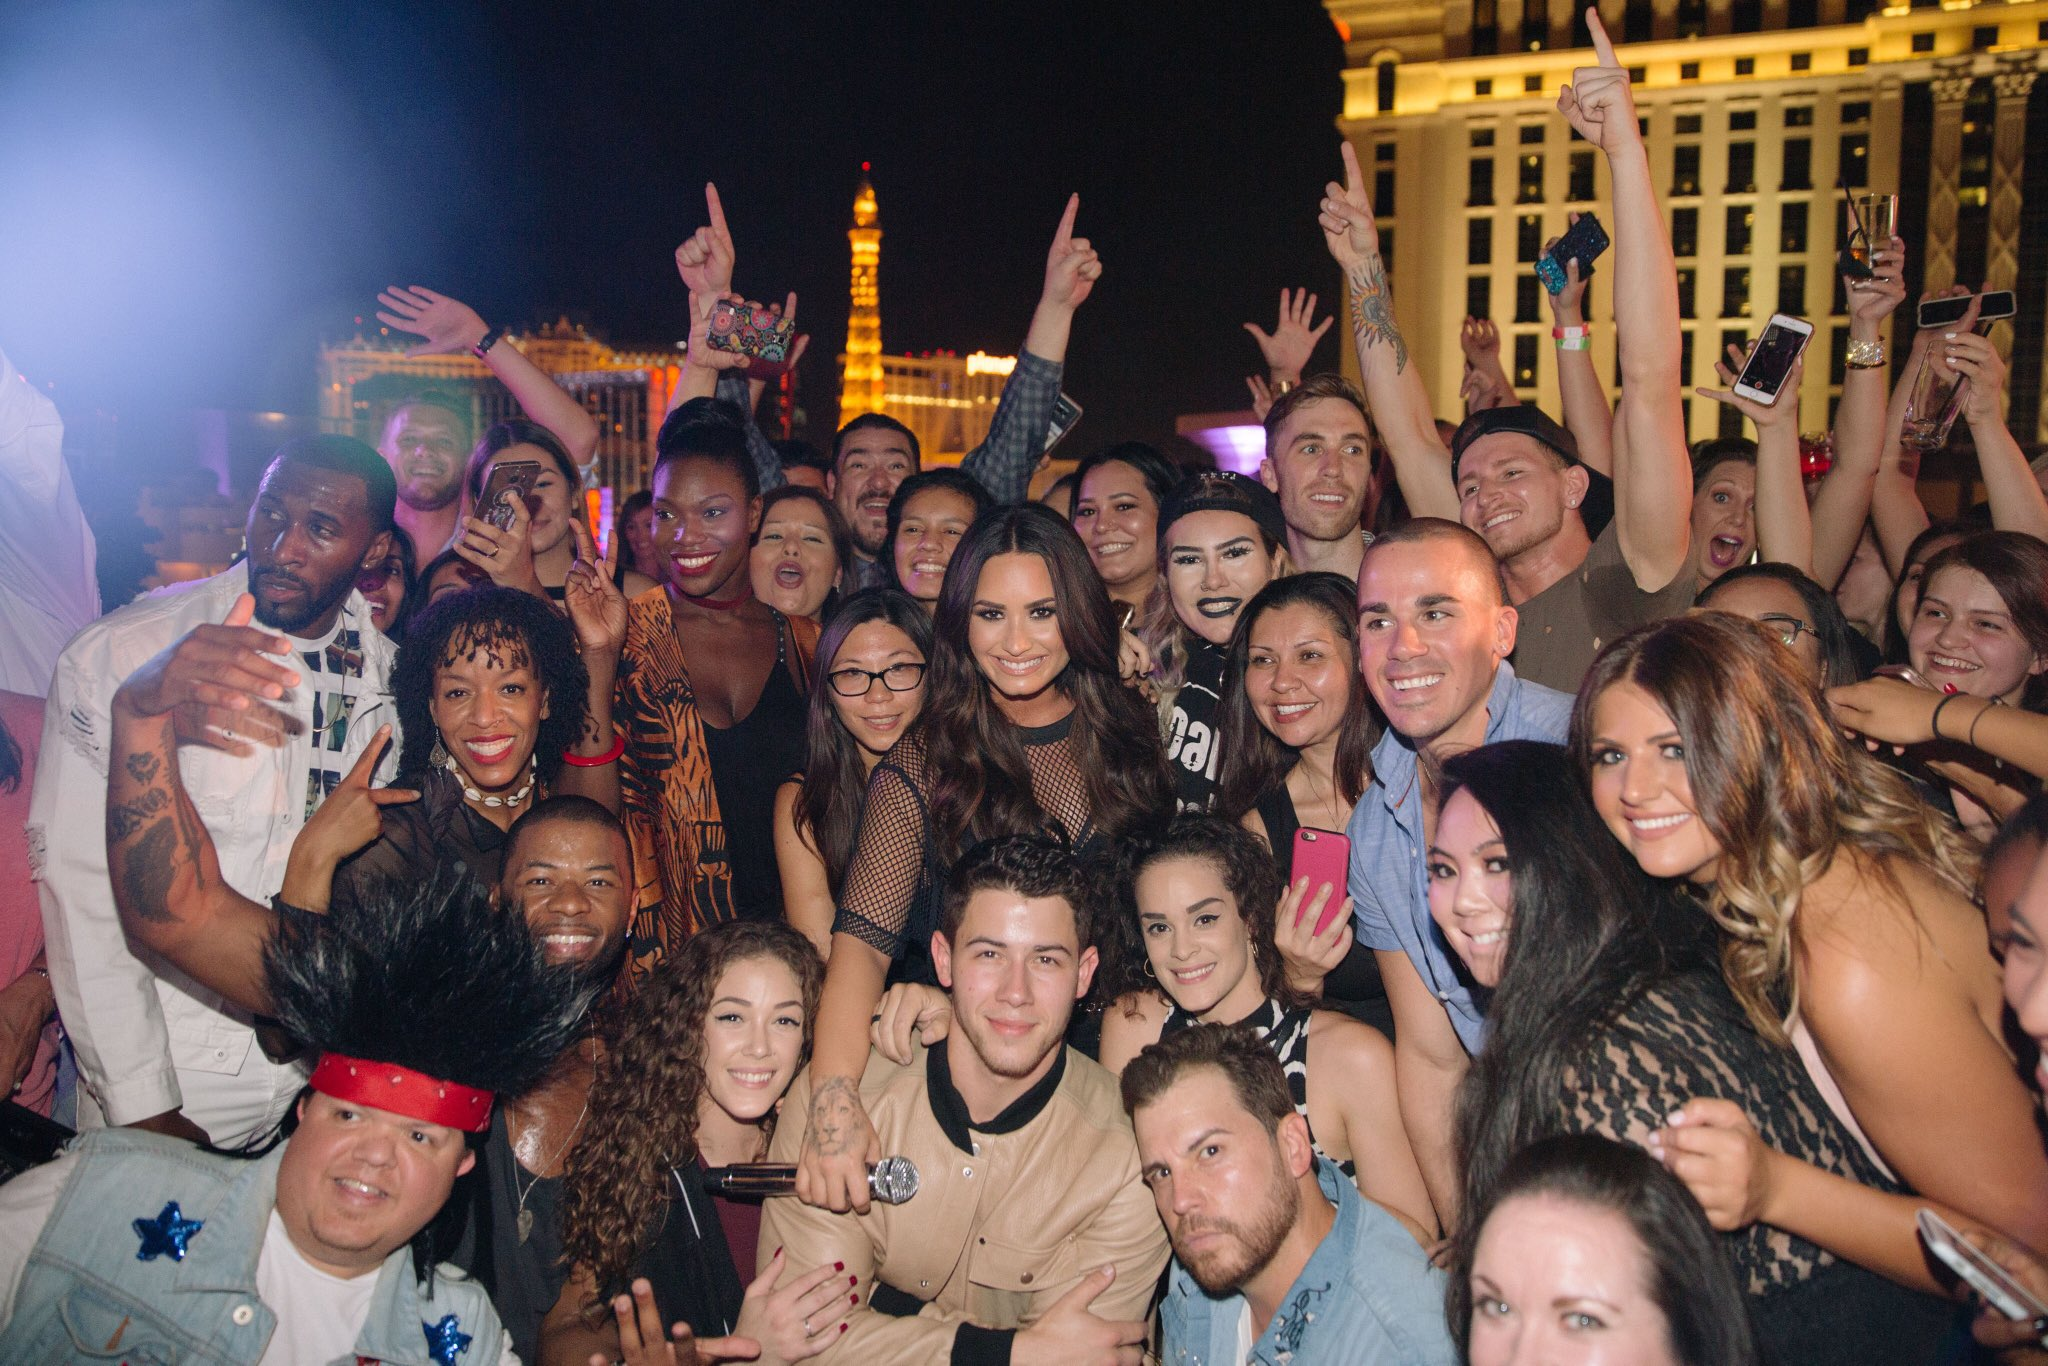 Vegas!! So much fun with you tonight �� #SNSHouseParty https://t.co/uO6m8UbYAO https://t.co/YlNeFyGUlI